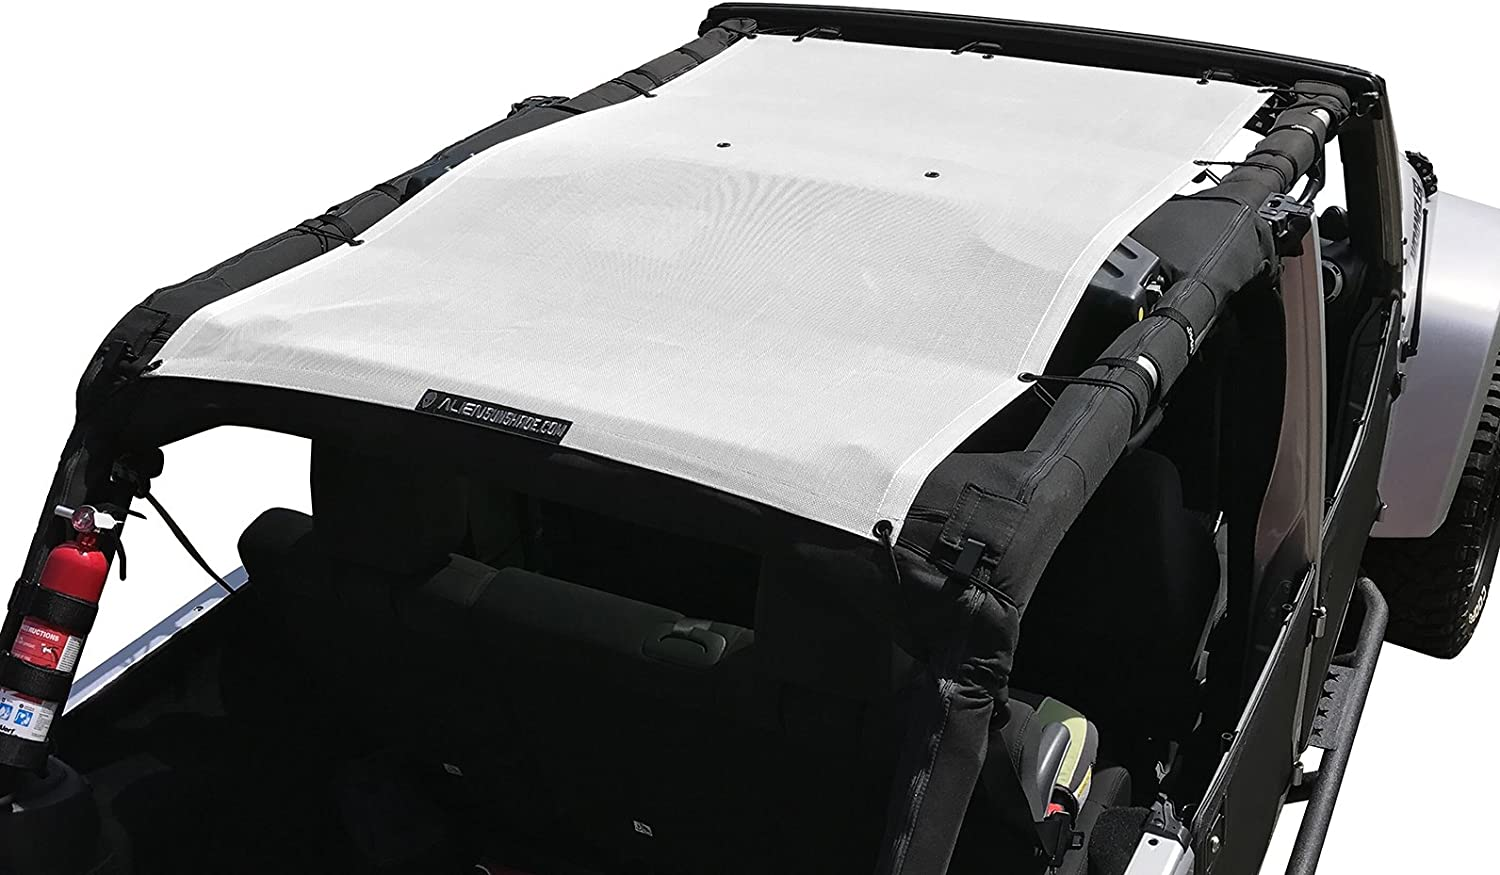 ALIEN SUNSHADE Jeep Wrangler Mesh Shade Top Cover with 10 Year Warranty Provides UV Protection for Your 4-Door JKU Krush Orange 2007-2017